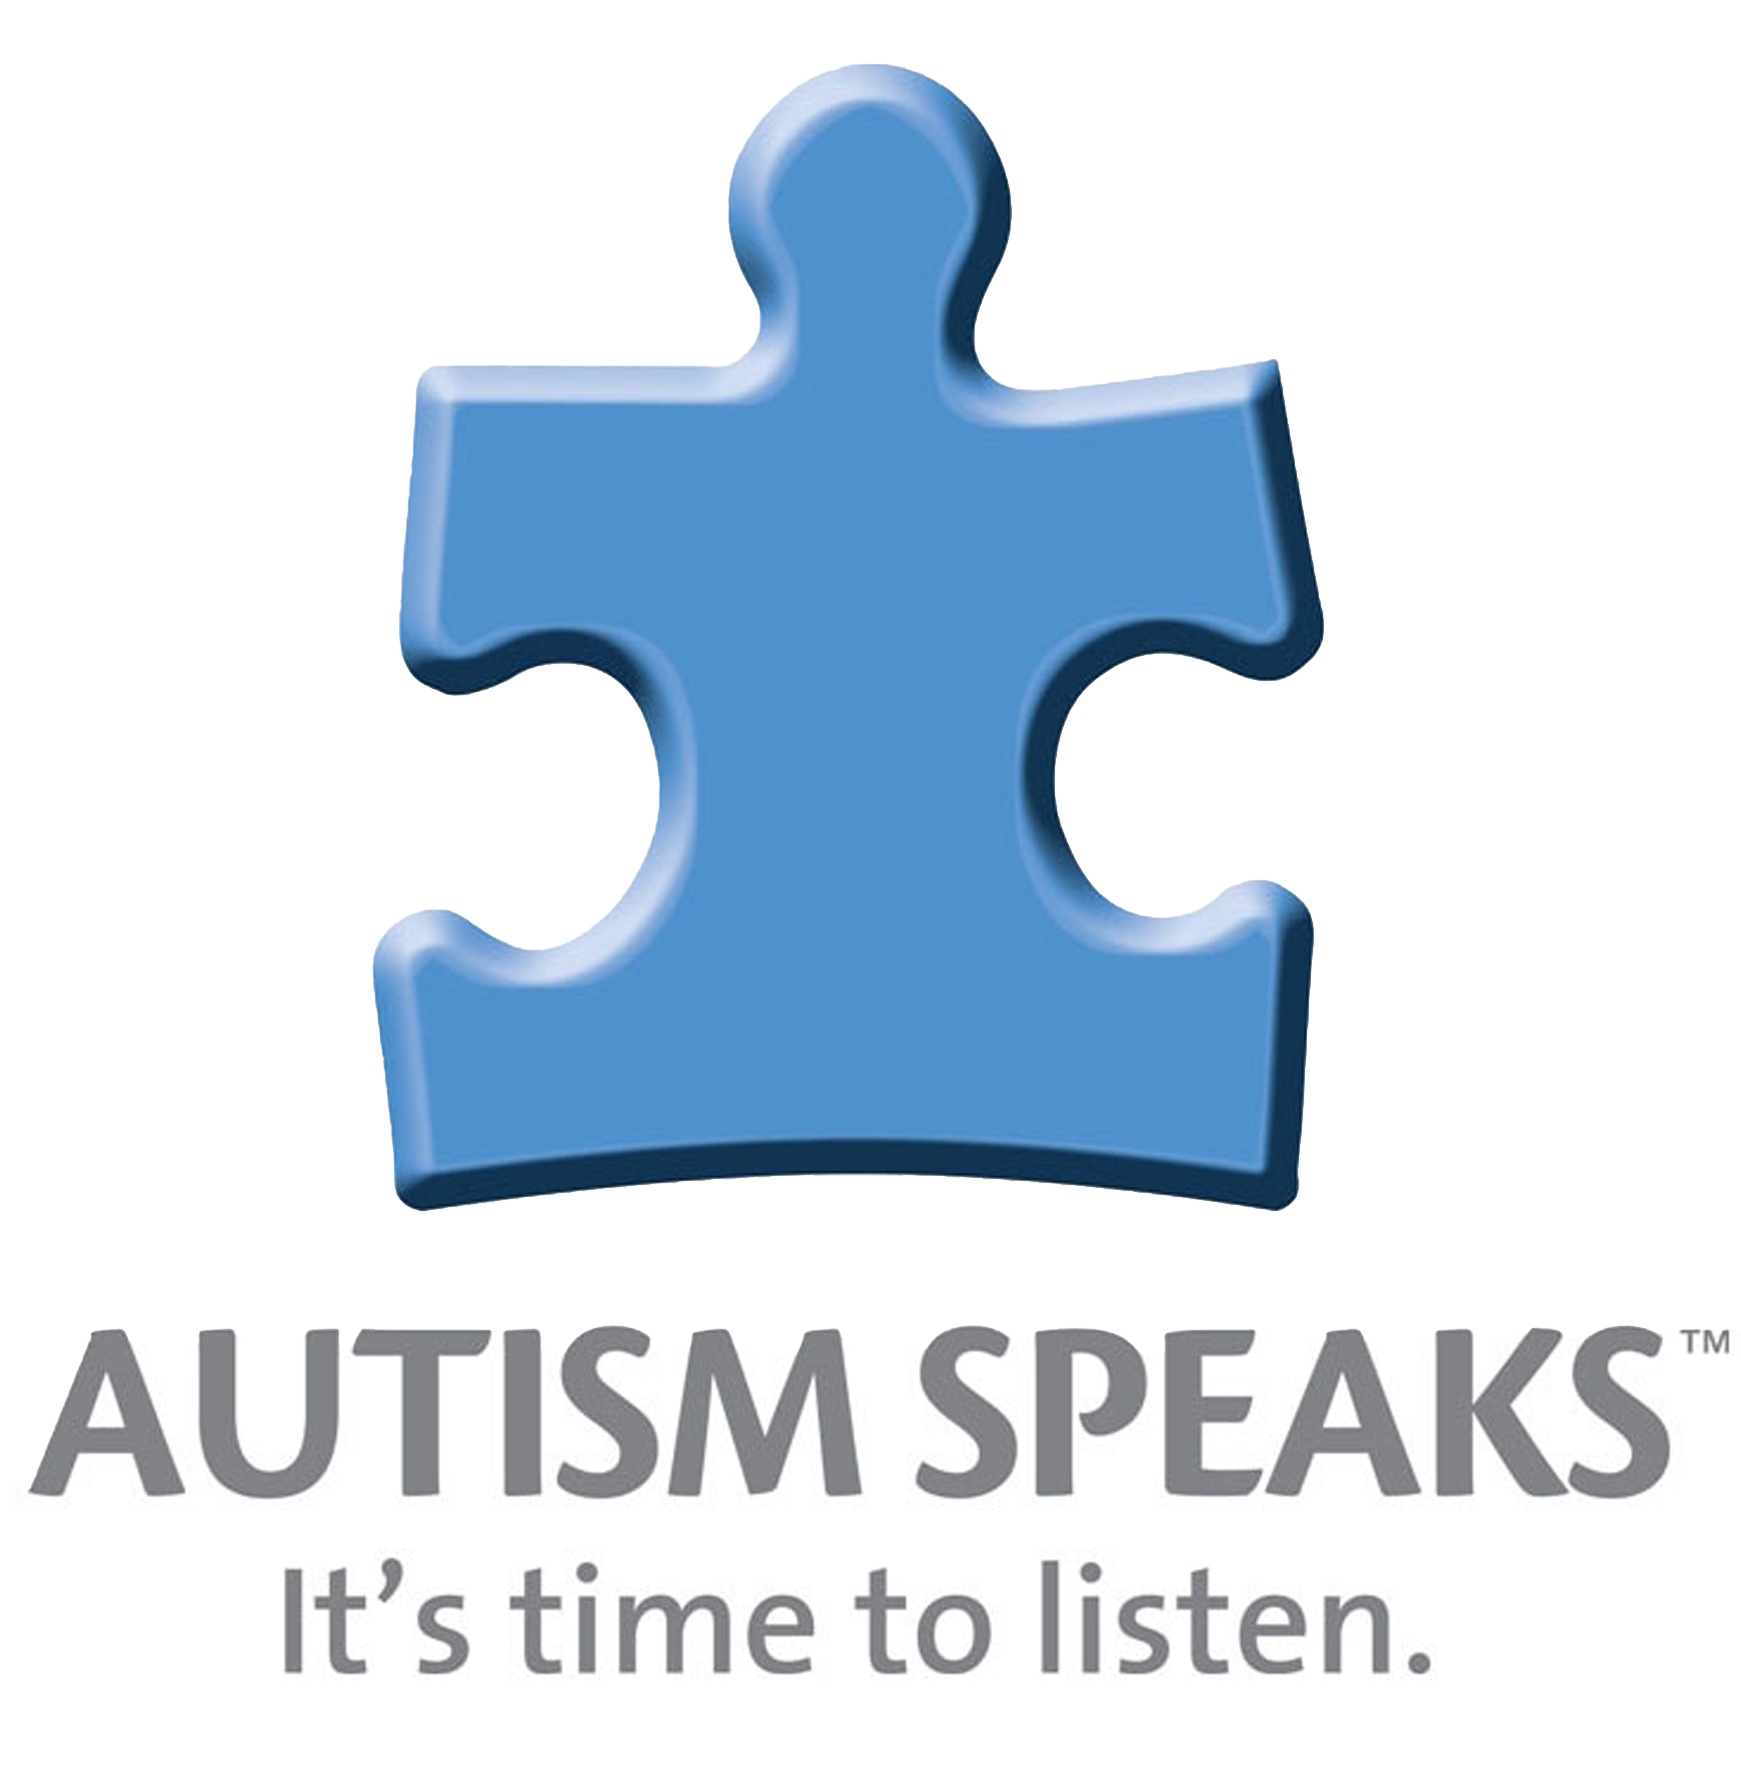 John Elder Robison Leaves Autism Speaks Amid Controversy Autism